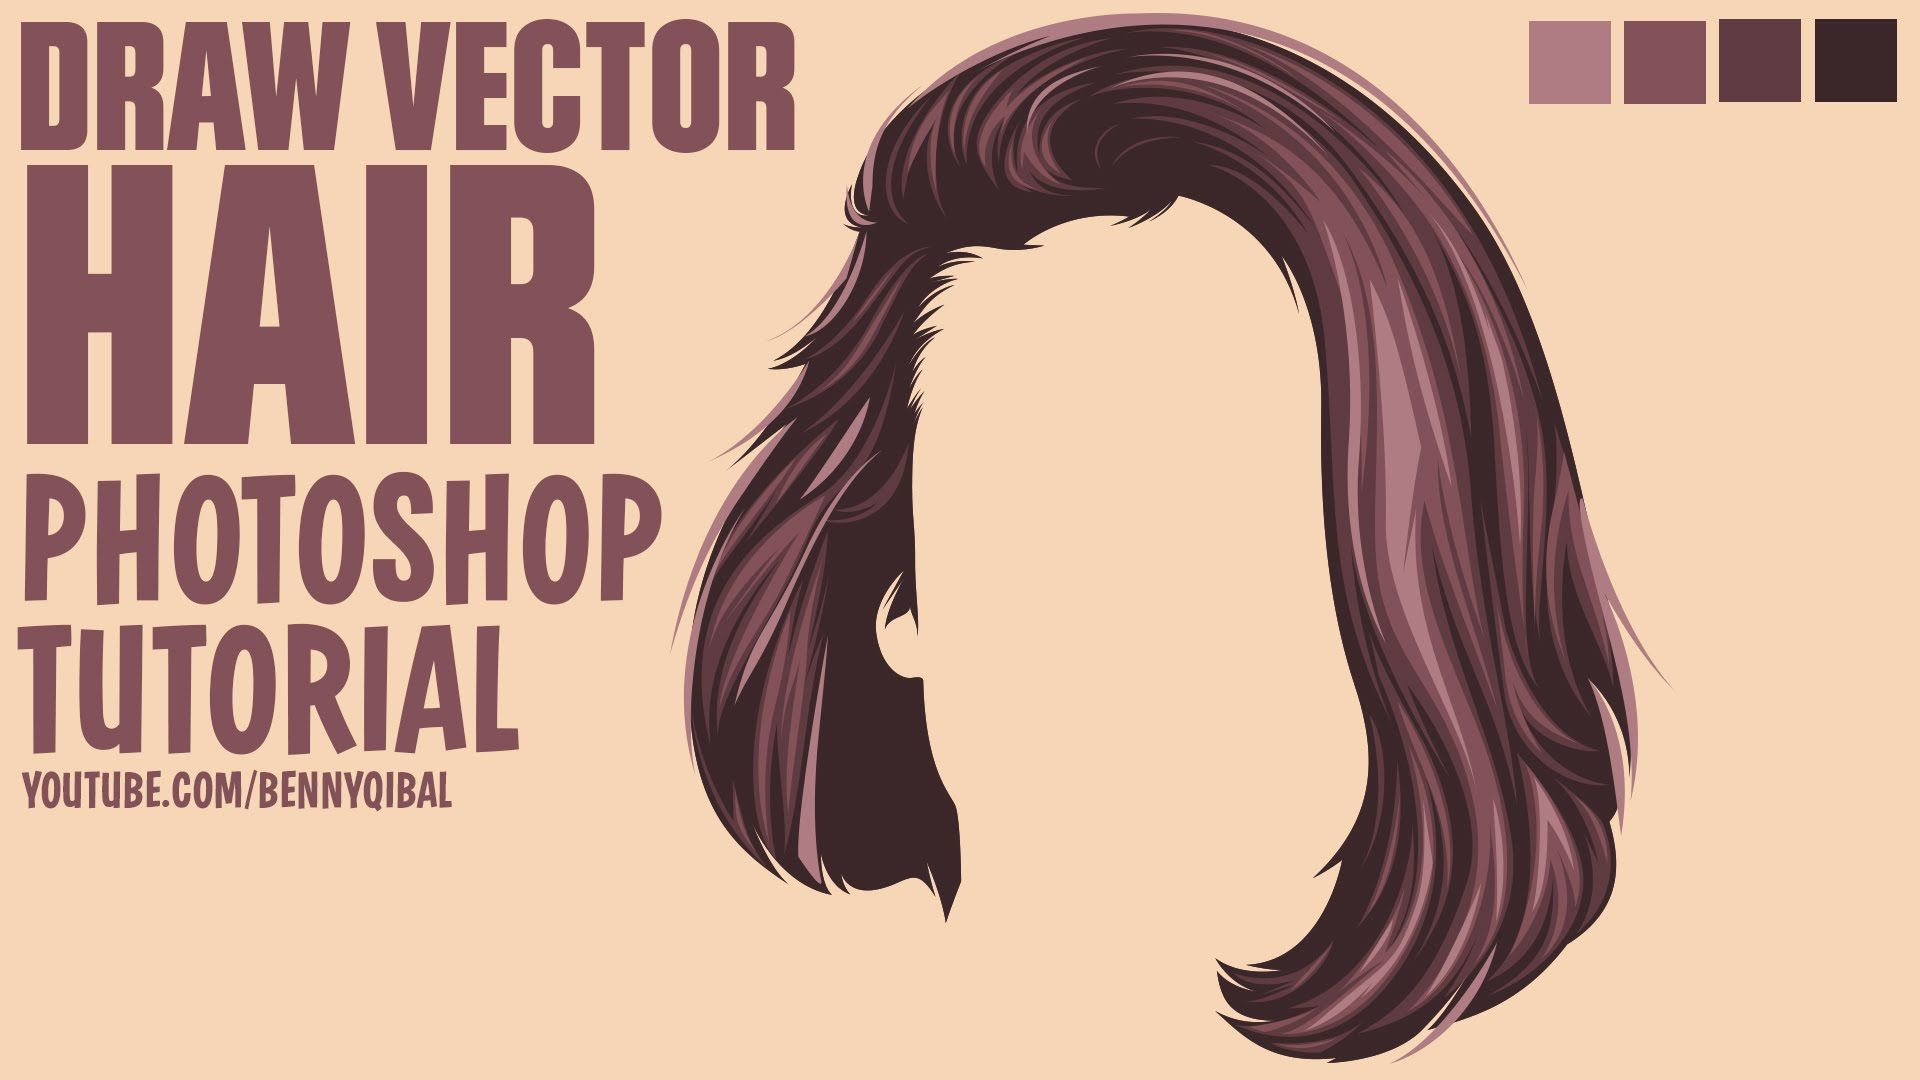 Draw Vector Hair Photoshop Tutorial In This Tutorials I Will Show